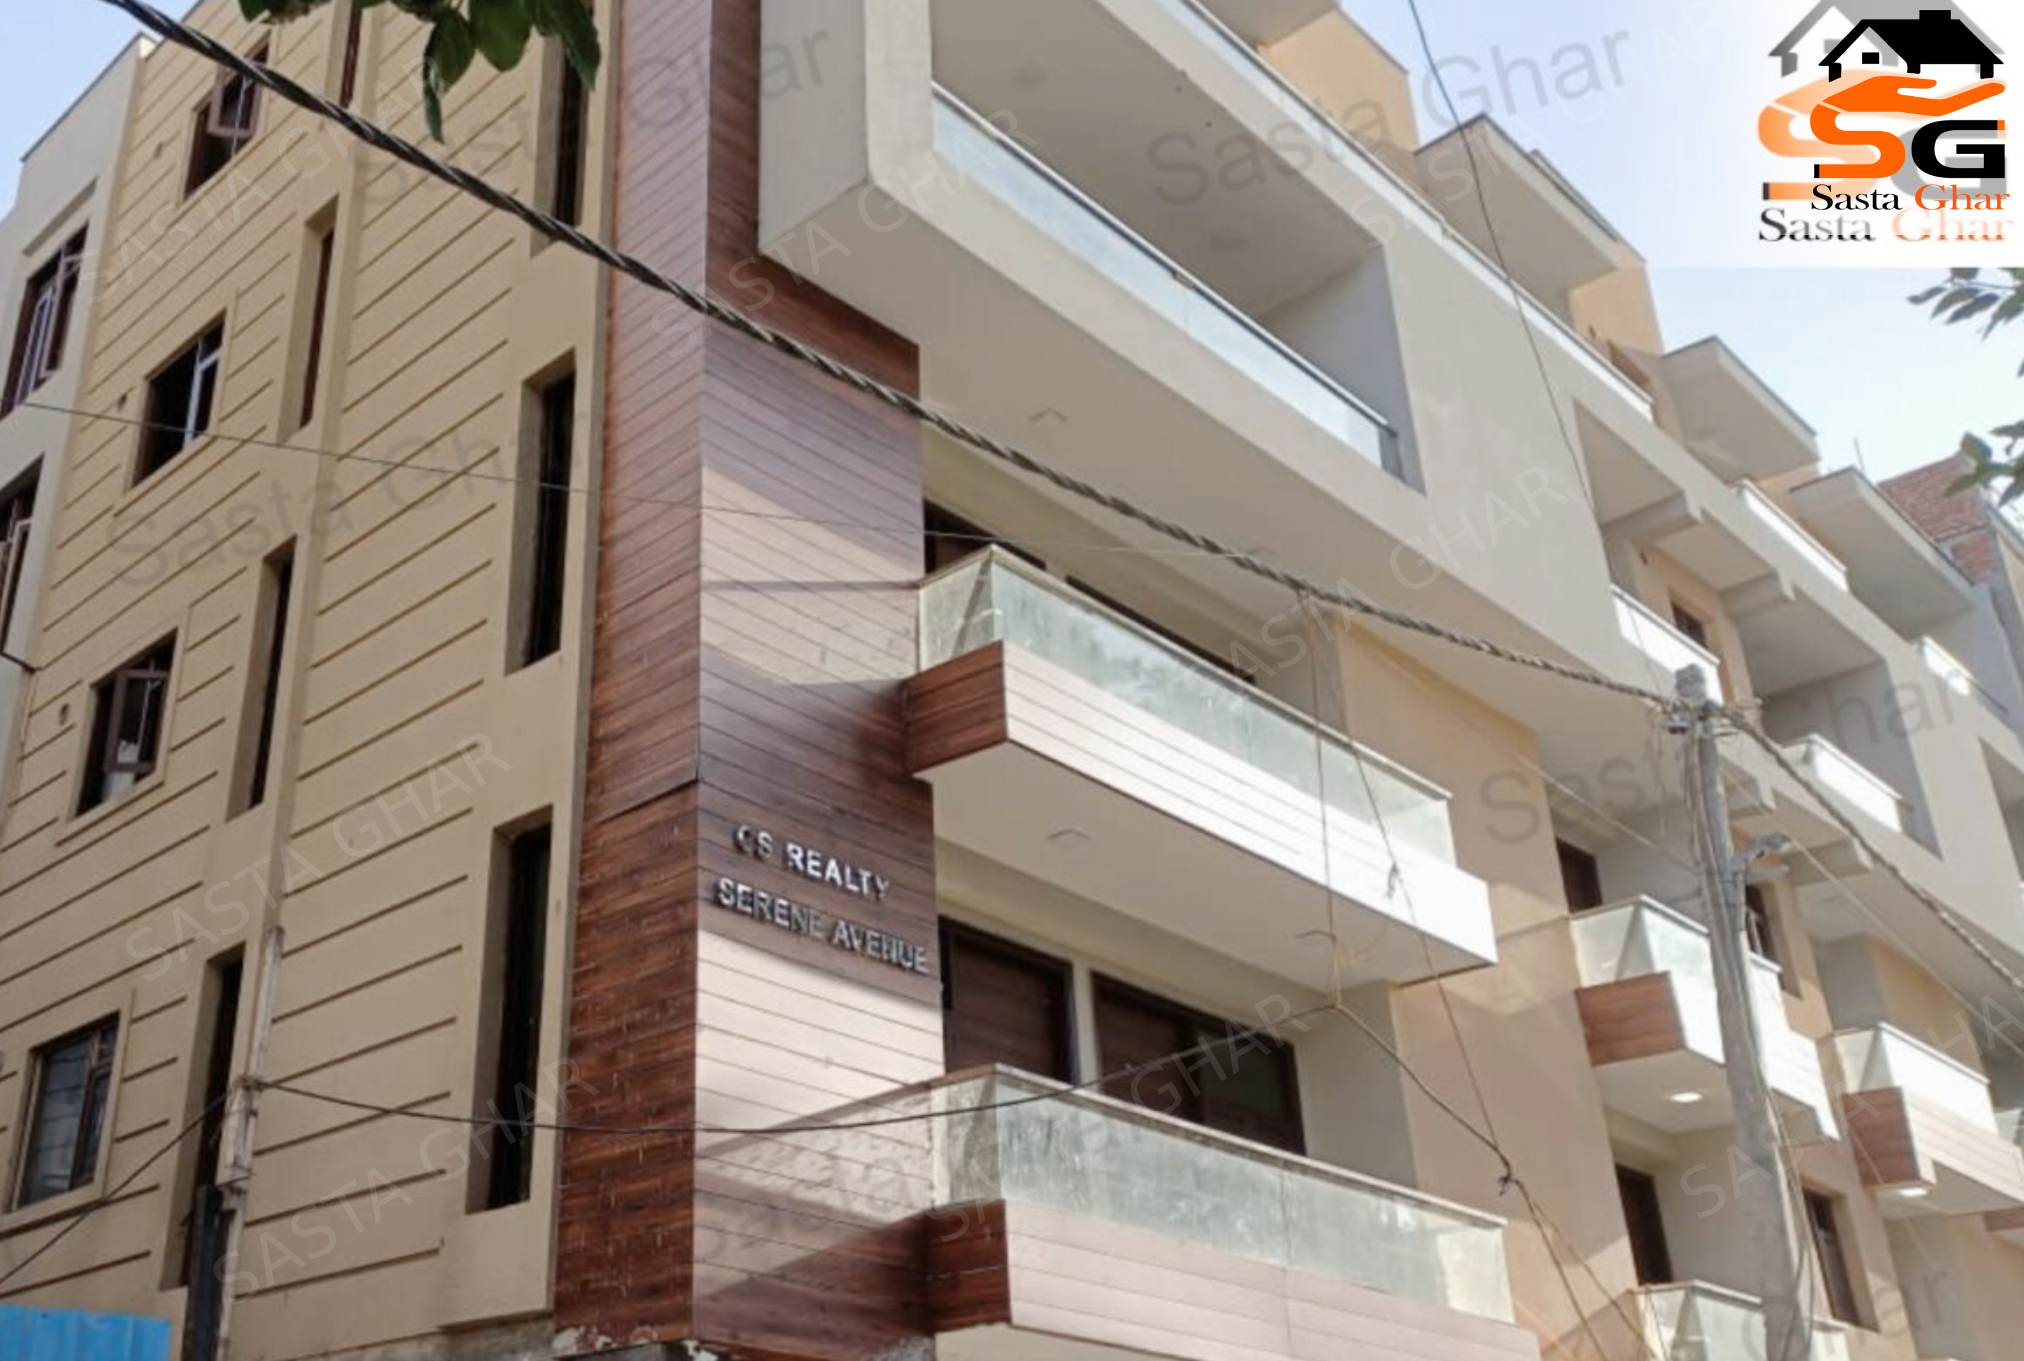 3 BHK Flats In Serena Avenue Image